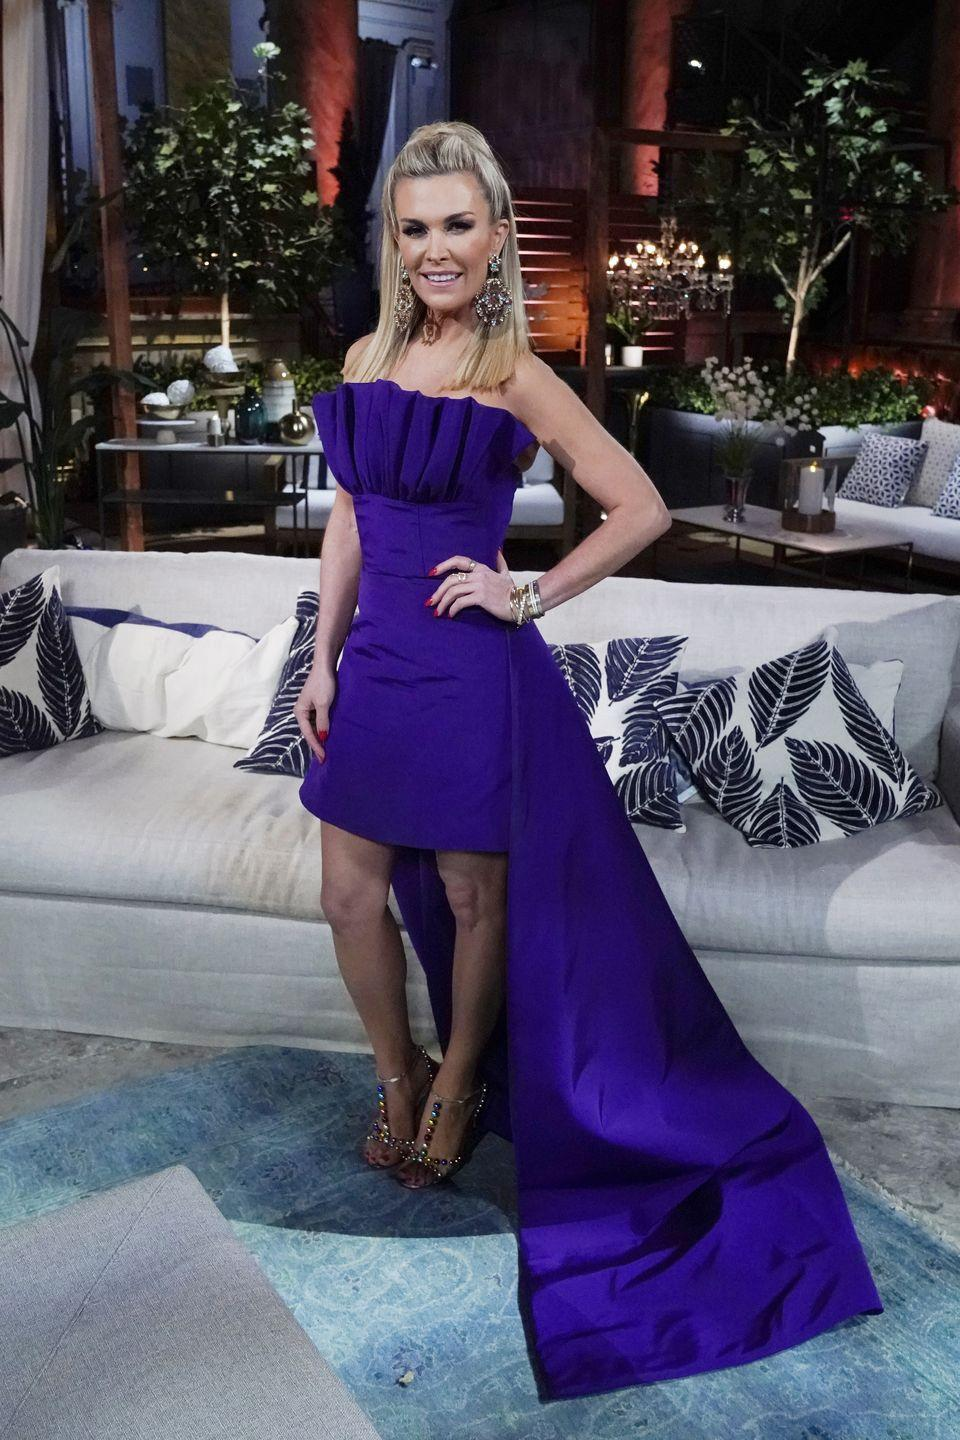 """<p>Another recent development in <em>New York City </em>is Tinsley Mortimer's departure. This one, however, came as no surprise and is actually a rare happy story as far as <em>Housewives</em> goes: she's moving to Chicago to be with her fiancé, Scott Kluth, whom castmate Carole Radziwill introduced her to while on the show. """"Thank you from the bottom of my heart to all my fans and friends who supported me and are happy for my fairy tale ending,"""" Tinsley <a href=""""https://www.instagram.com/p/CBUJrHRD9DV/"""" rel=""""nofollow noopener"""" target=""""_blank"""" data-ylk=""""slk:wrote on Instagram."""" class=""""link rapid-noclick-resp"""">wrote on Instagram. </a>""""Without #RHONY, I would never have met my prince charming, Scott.""""</p>"""